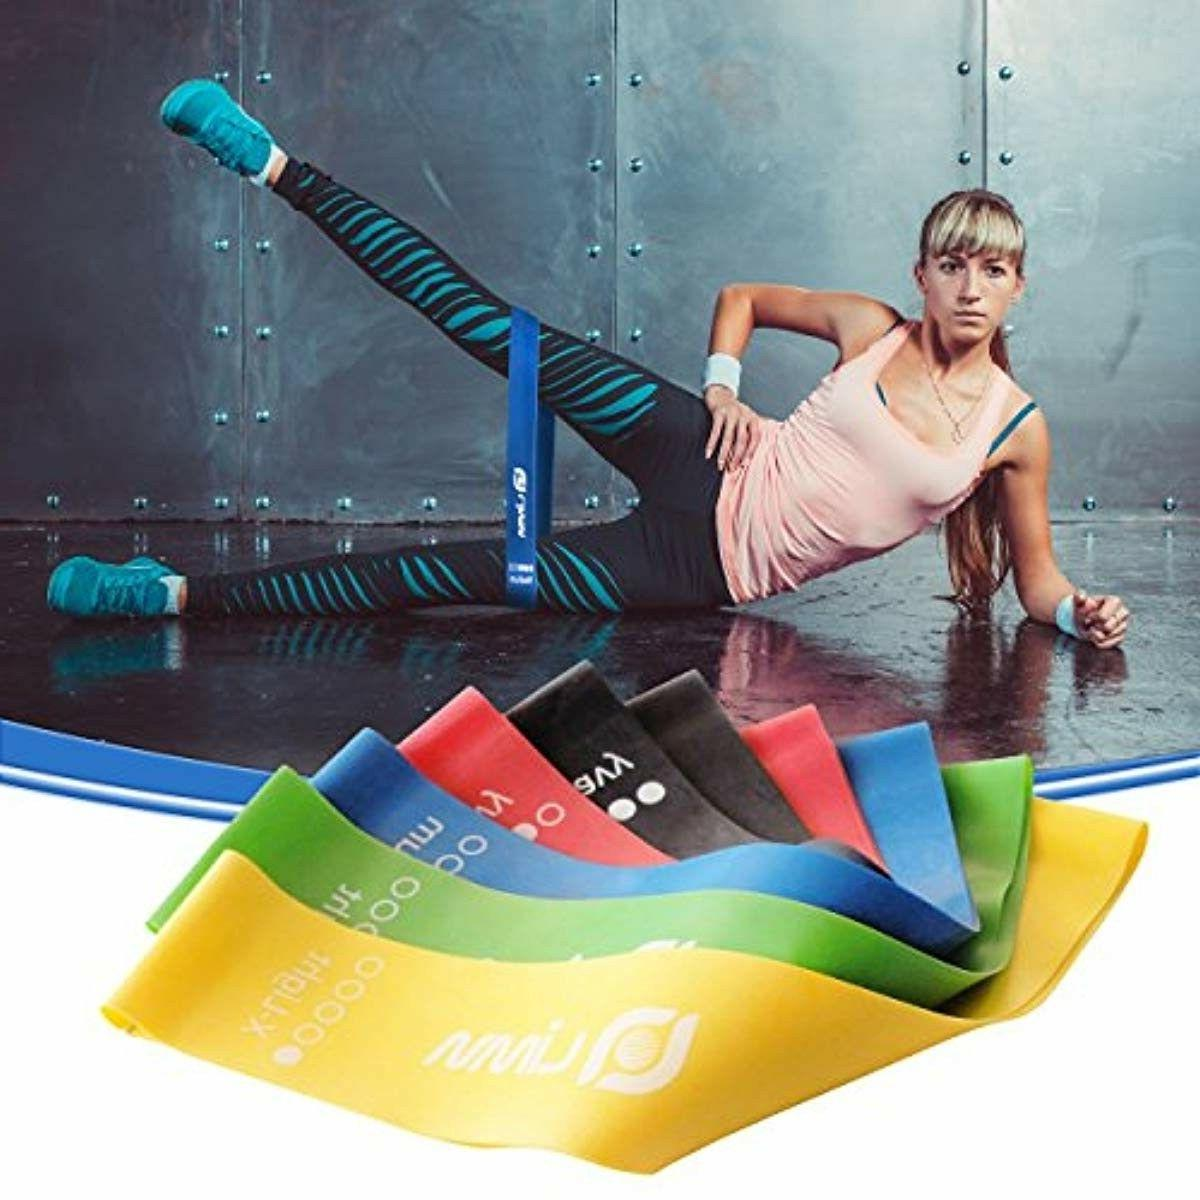 Limm Resistance Loops - Set of 5, 12-inch Workout Flexbands for